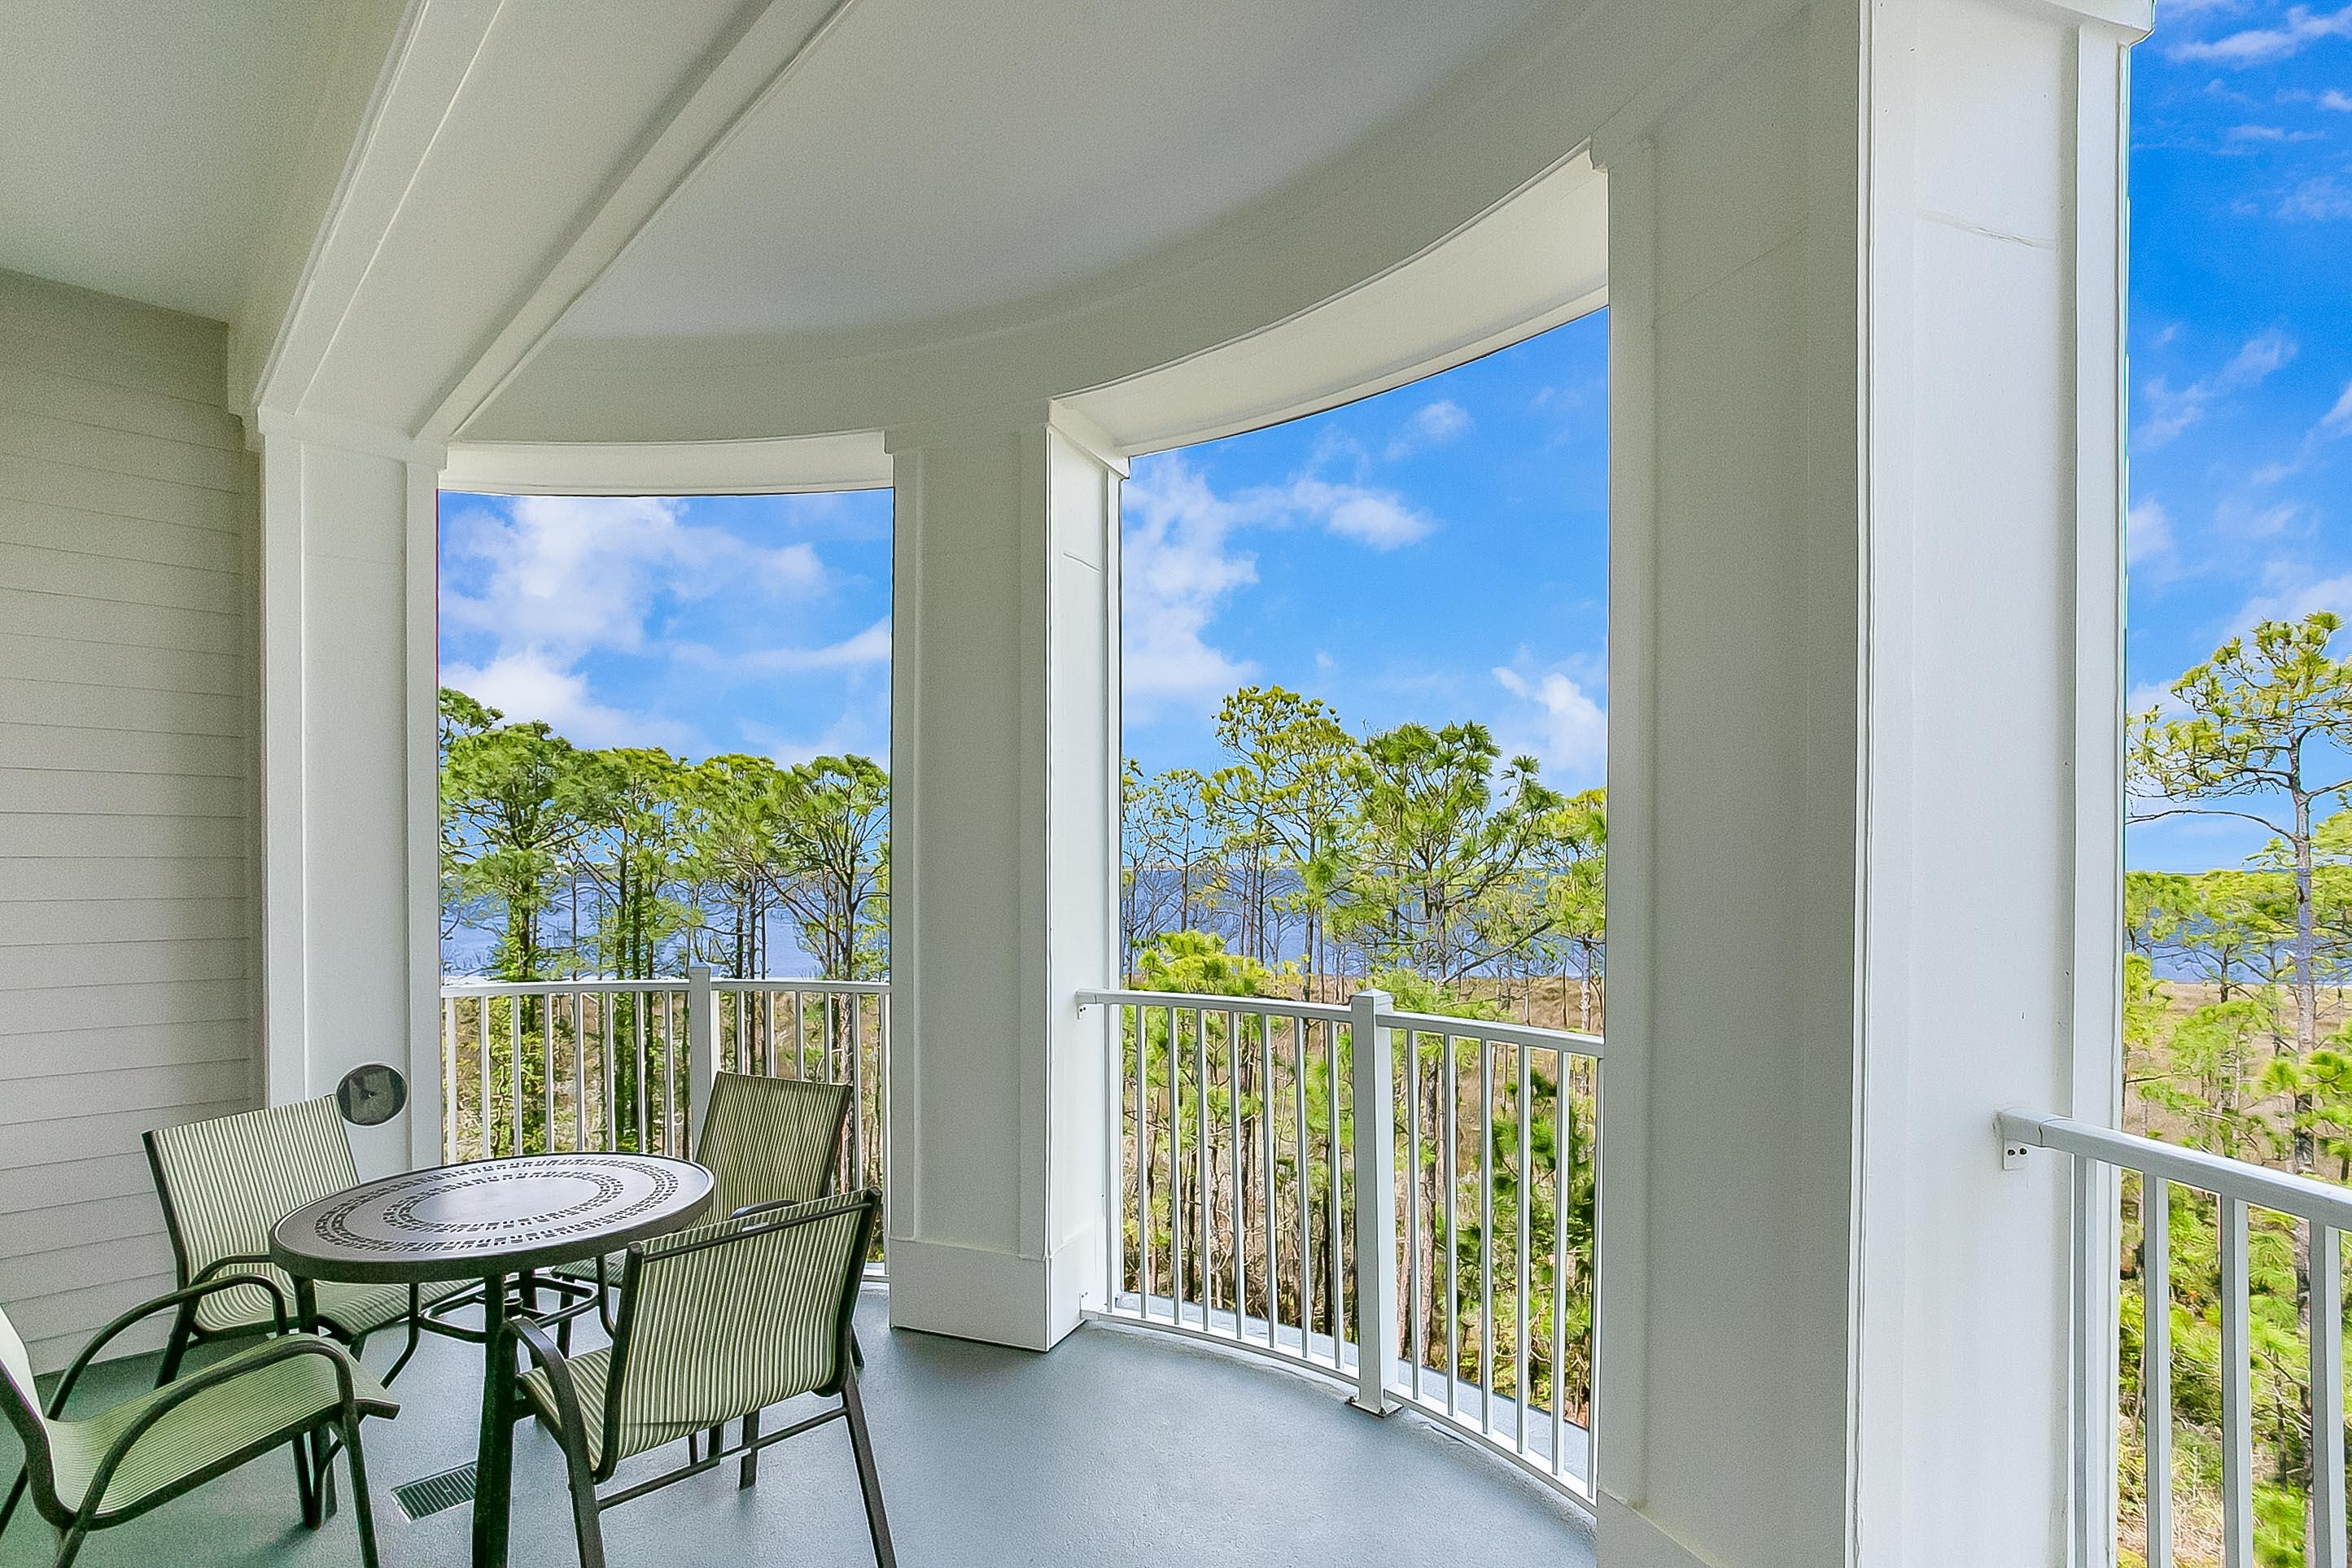 Enjoy tranquil views of the Choctawhatchee Bay from the large circular balcony. This lock-off floor plan allows you to utilize it as a 2 bedroom, or 1 bedroom and a studio in order to increase your rental opportunities. The one bedroom portion has a full kitchen with granite counter top and subway tile backsplash, a master bedroom with king sized bed and en suite bath, new sleeper sofa in the living area,  and an additional full bath to accommodate extra guests. The studio lock-off has a queen sized bed, full bath and kitchenette. Owners have access to the resort style pool and fitness center at the Grand Sandestin, and exclusive access to the private Solstice Club sitting on the bay featuring outdoor barbecue area, kitchen and screened porch with fireplace. As an introduction to the Sandestin lifestyle, we invite our new owners to explore amenities that make Sandestin special. The listing brokerage and seller(s) are presenting the buyer(s) of this property with (2) 90-minute rounds of Tennis court time, a golf foursome at one of our three championship courses, and a round of golf for up to four (4) players at the unrivaled Burnt Pine Golf Club.  Sandestin Golf and Beach Resort is a major destination for all seasons and all ages, and has been named the #1 resort on Florida's Emerald Coast. This magical resort spanning over 2,000 acres is comprised of over 70 unique neighborhoods of condominiums, villas, town homes, and estates. The resort features miles of sandy white beaches and pristine bay front, four championship golf courses, a world-class tennis center with 15 courts, 4 resort swimming pools (and 15 private neighborhood pools), a 123-slip marina, a fully equipped and professionally staffed fitness center and spa, meeting spaces and The Village of Baytowne Wharf, a charming pedestrian village with events, shopping, dining, family entertainment and nightlife. For true golf cart community living, Grand Boulevard is just outside the resort gates and provides acces